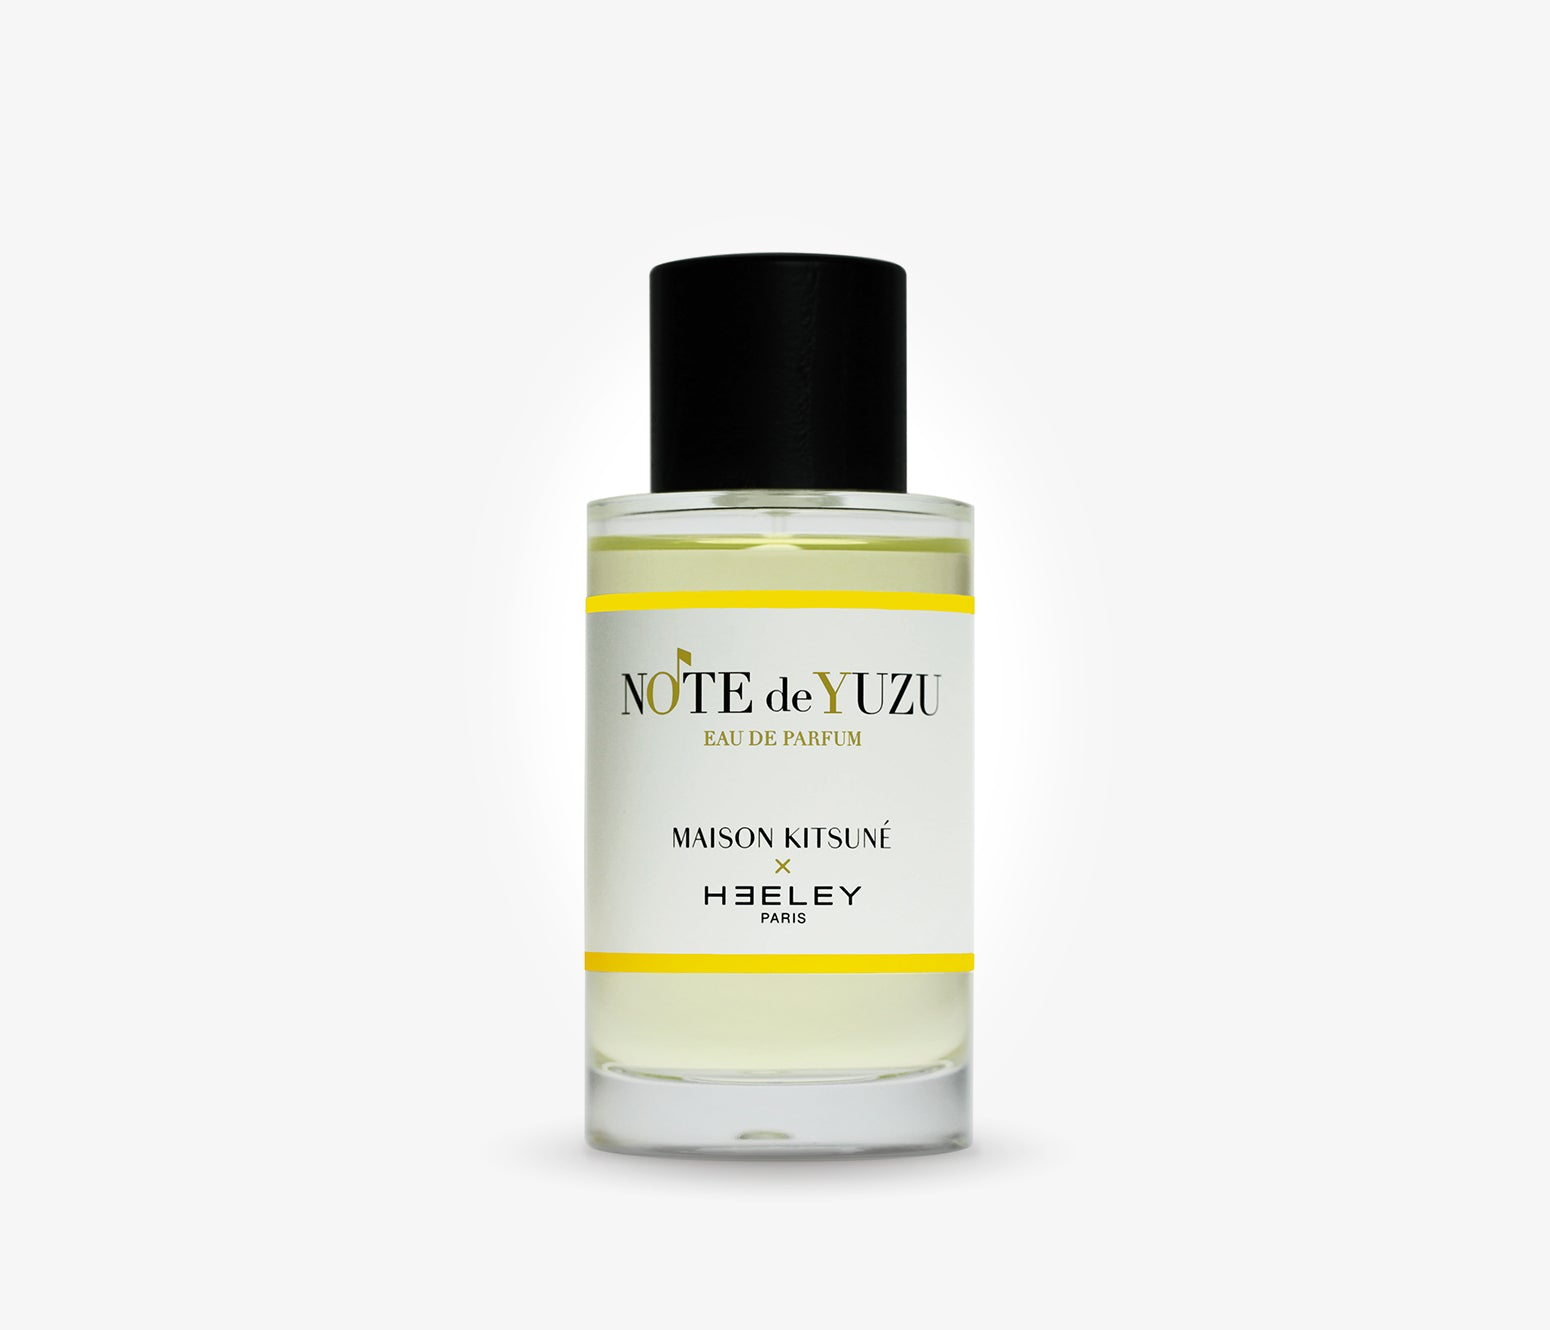 Heeley - Note de Yuzu - 100ml - AQE001 - product image - Fragrance - Les Senteurs